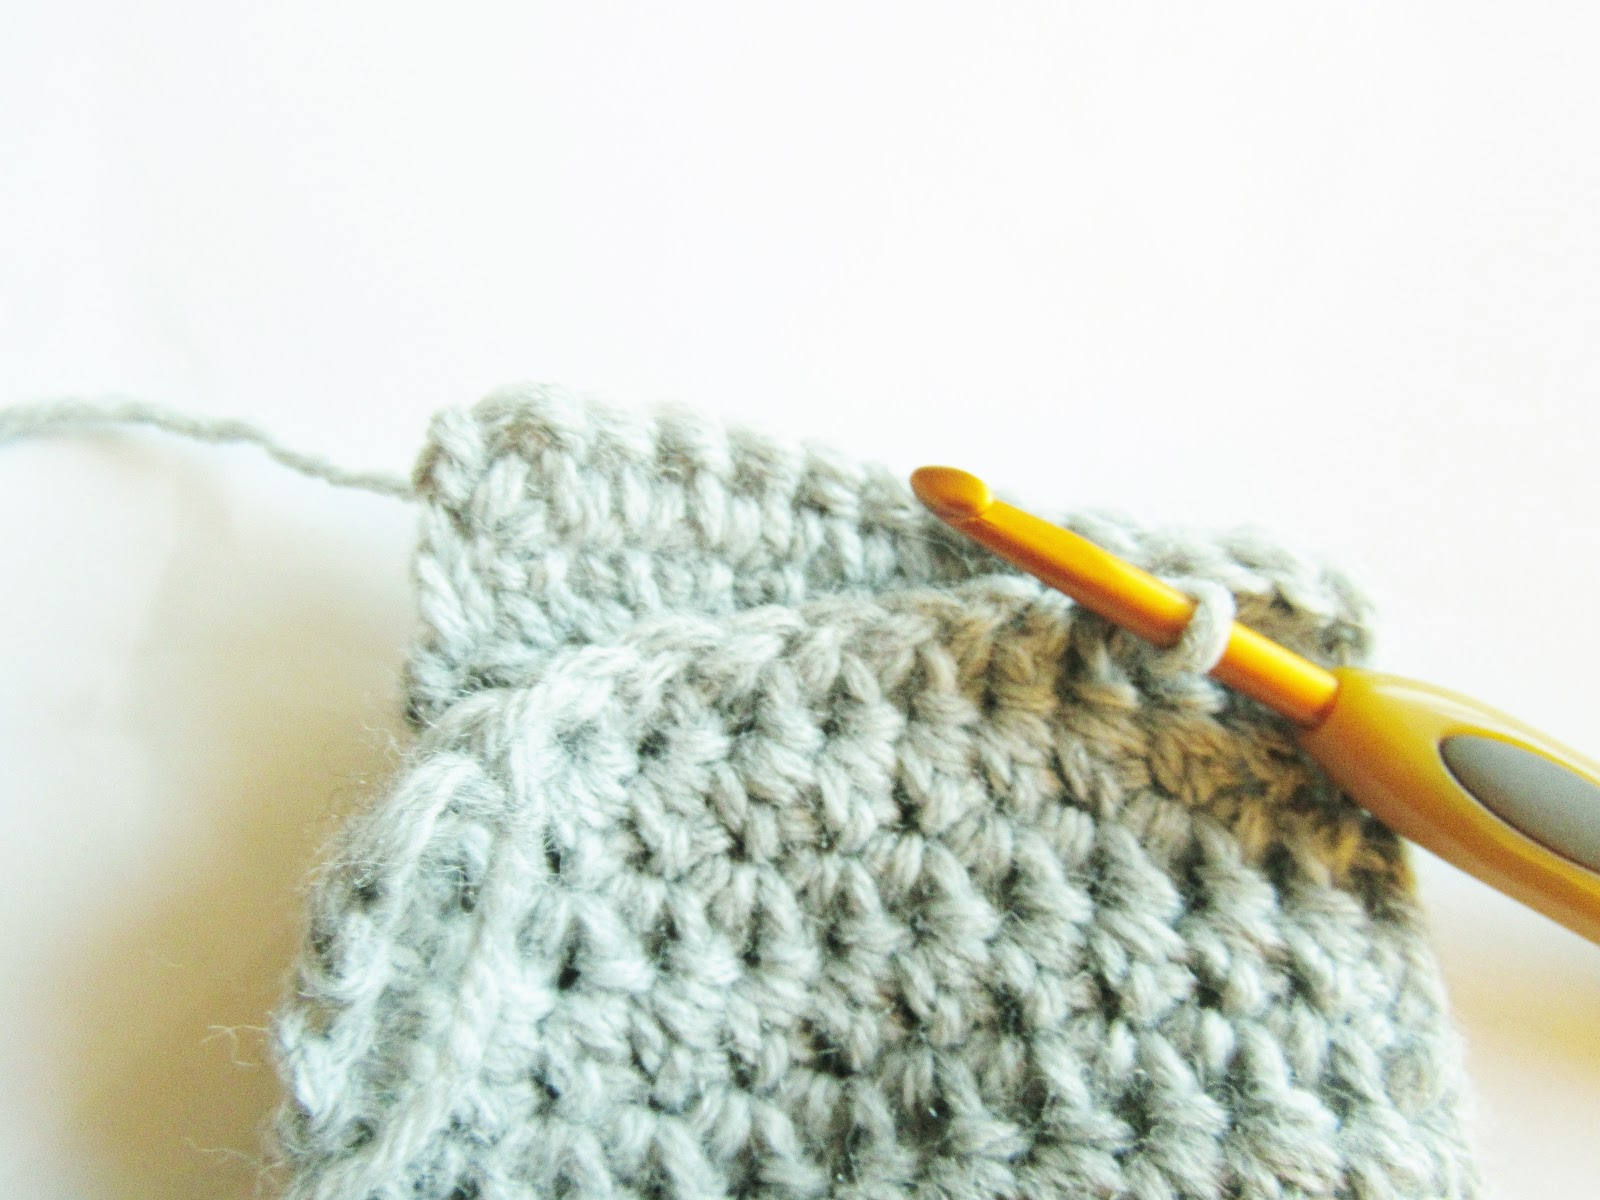 How to Crochet a Quick Twist Headband or Earwarmer, A Free Crochet ...